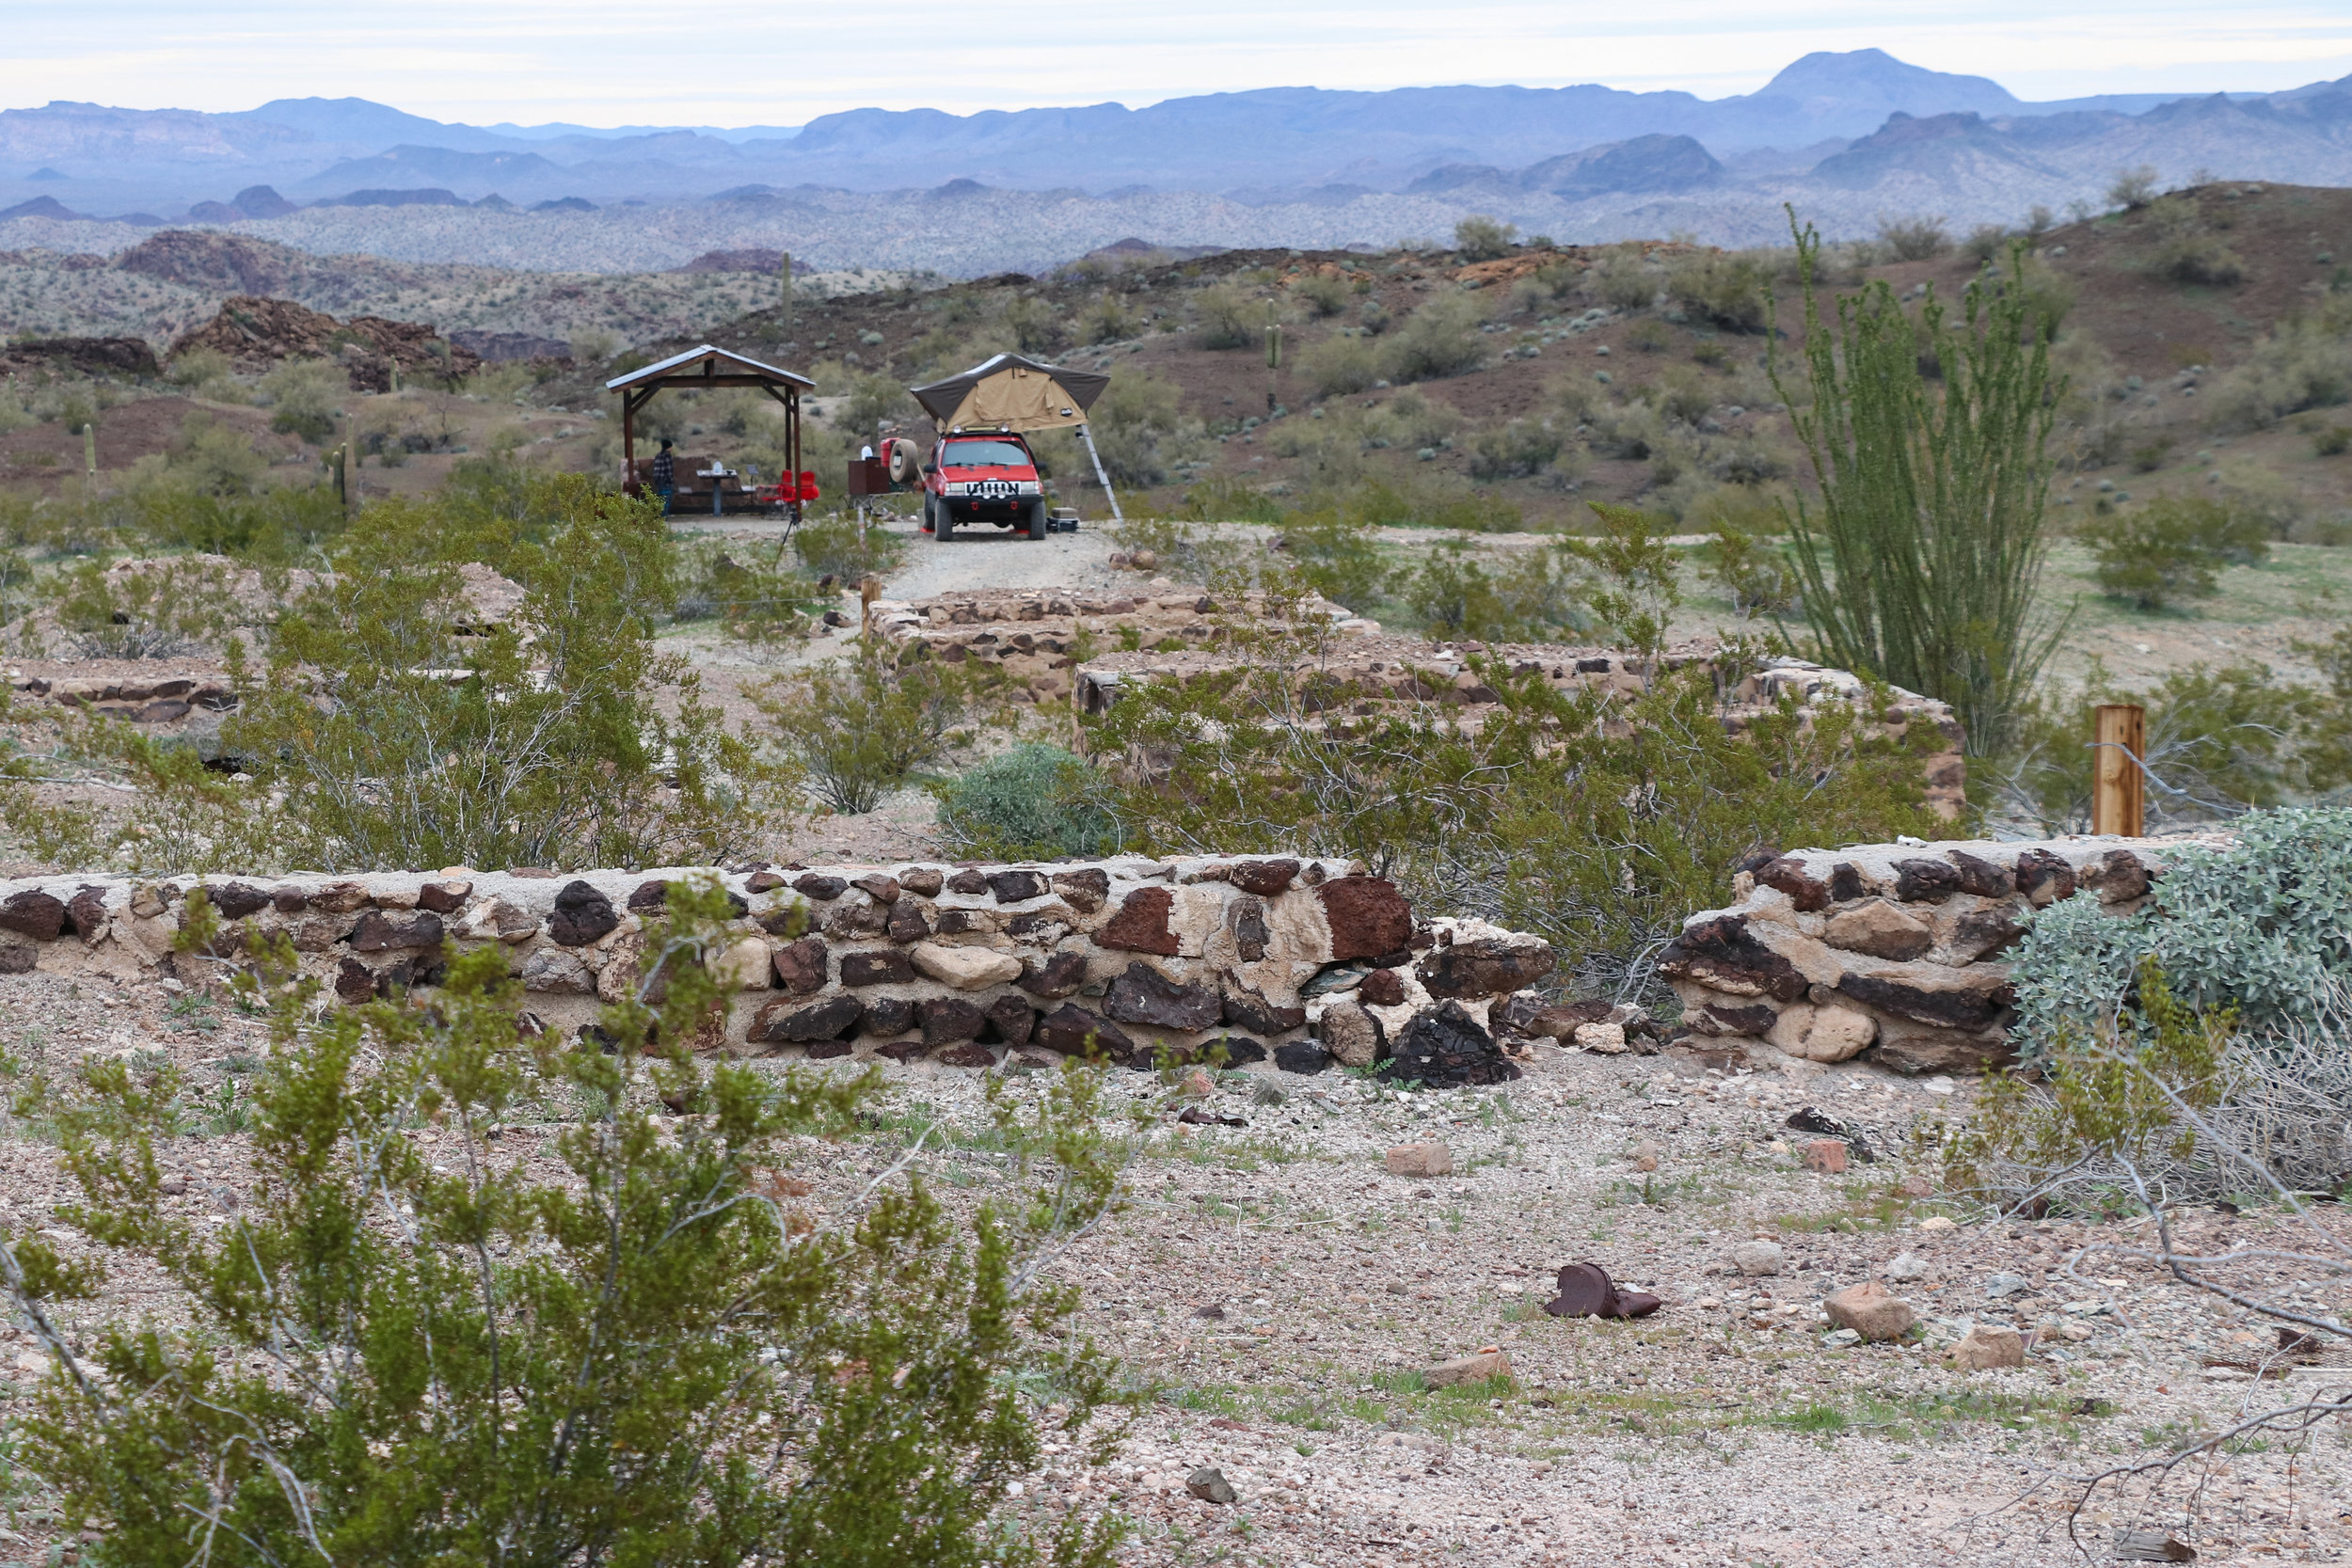 The ruins of Swansea overlook our camp.